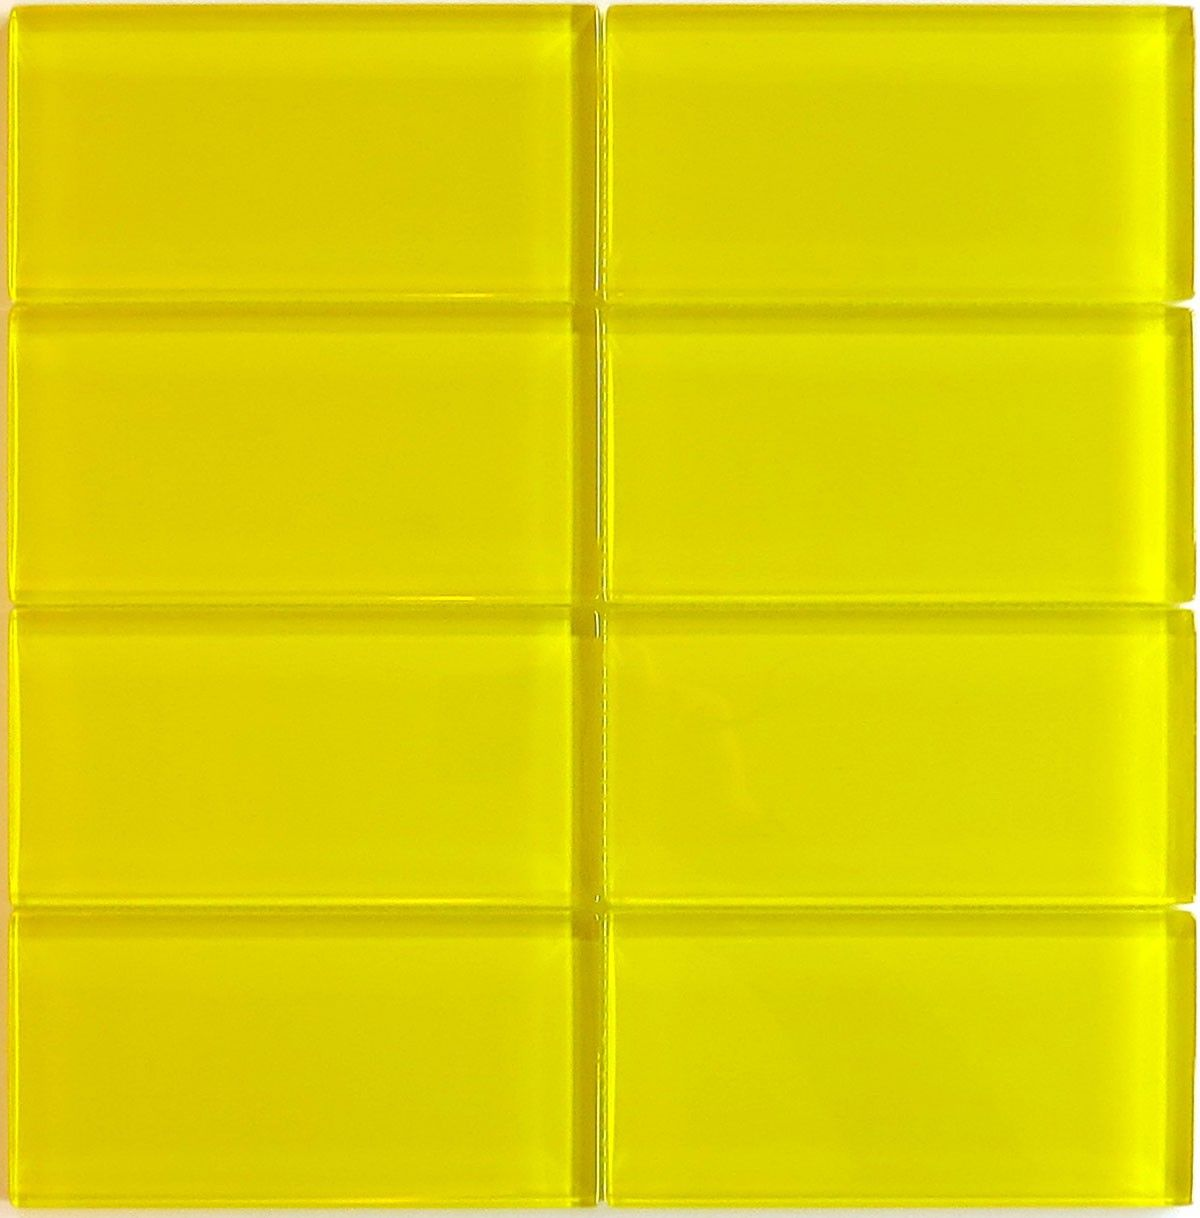 Delighted 1 Inch Ceramic Tiles Tiny 1 X 1 Acoustic Ceiling Tiles Square 1930S Floor Tiles Reproduction 2 X 2 Ceiling Tile Old 2X2 Floor Tile Bright2X4 Black Ceiling Tiles Lush Butter   3x6 Glass Subway Tile   Lush 3x6 Subway Tile \